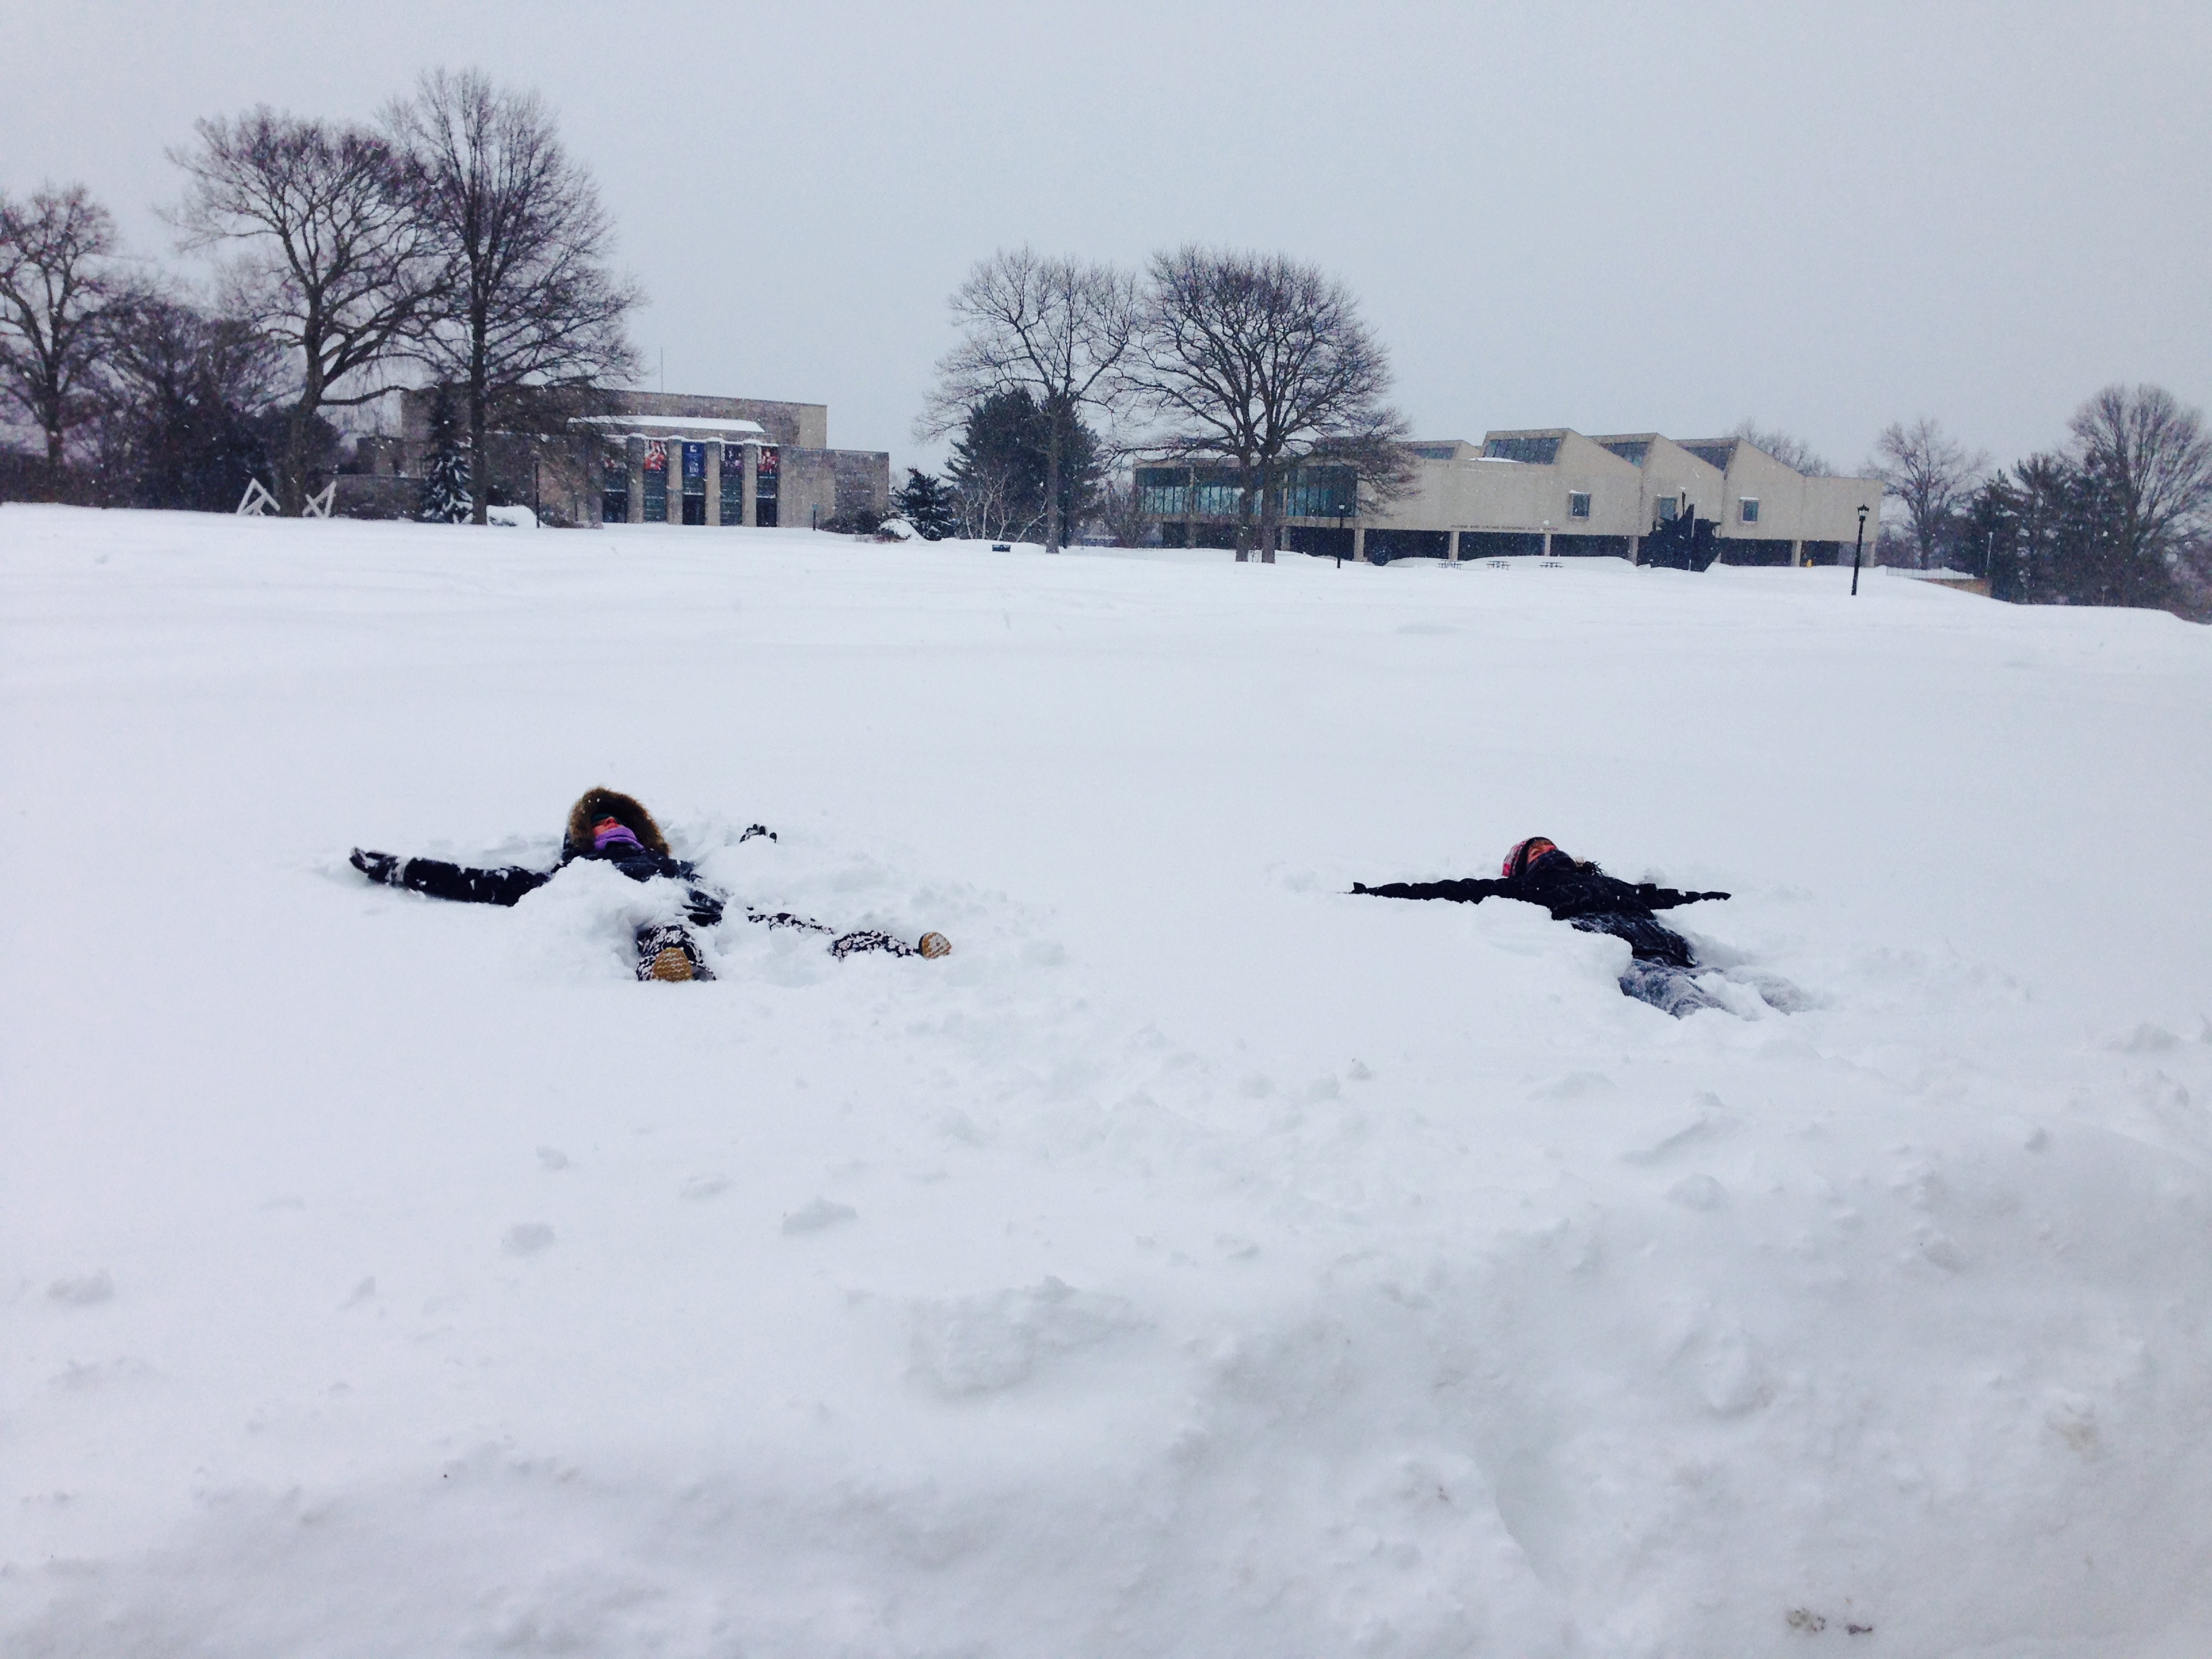 Snow angels in a blizzard